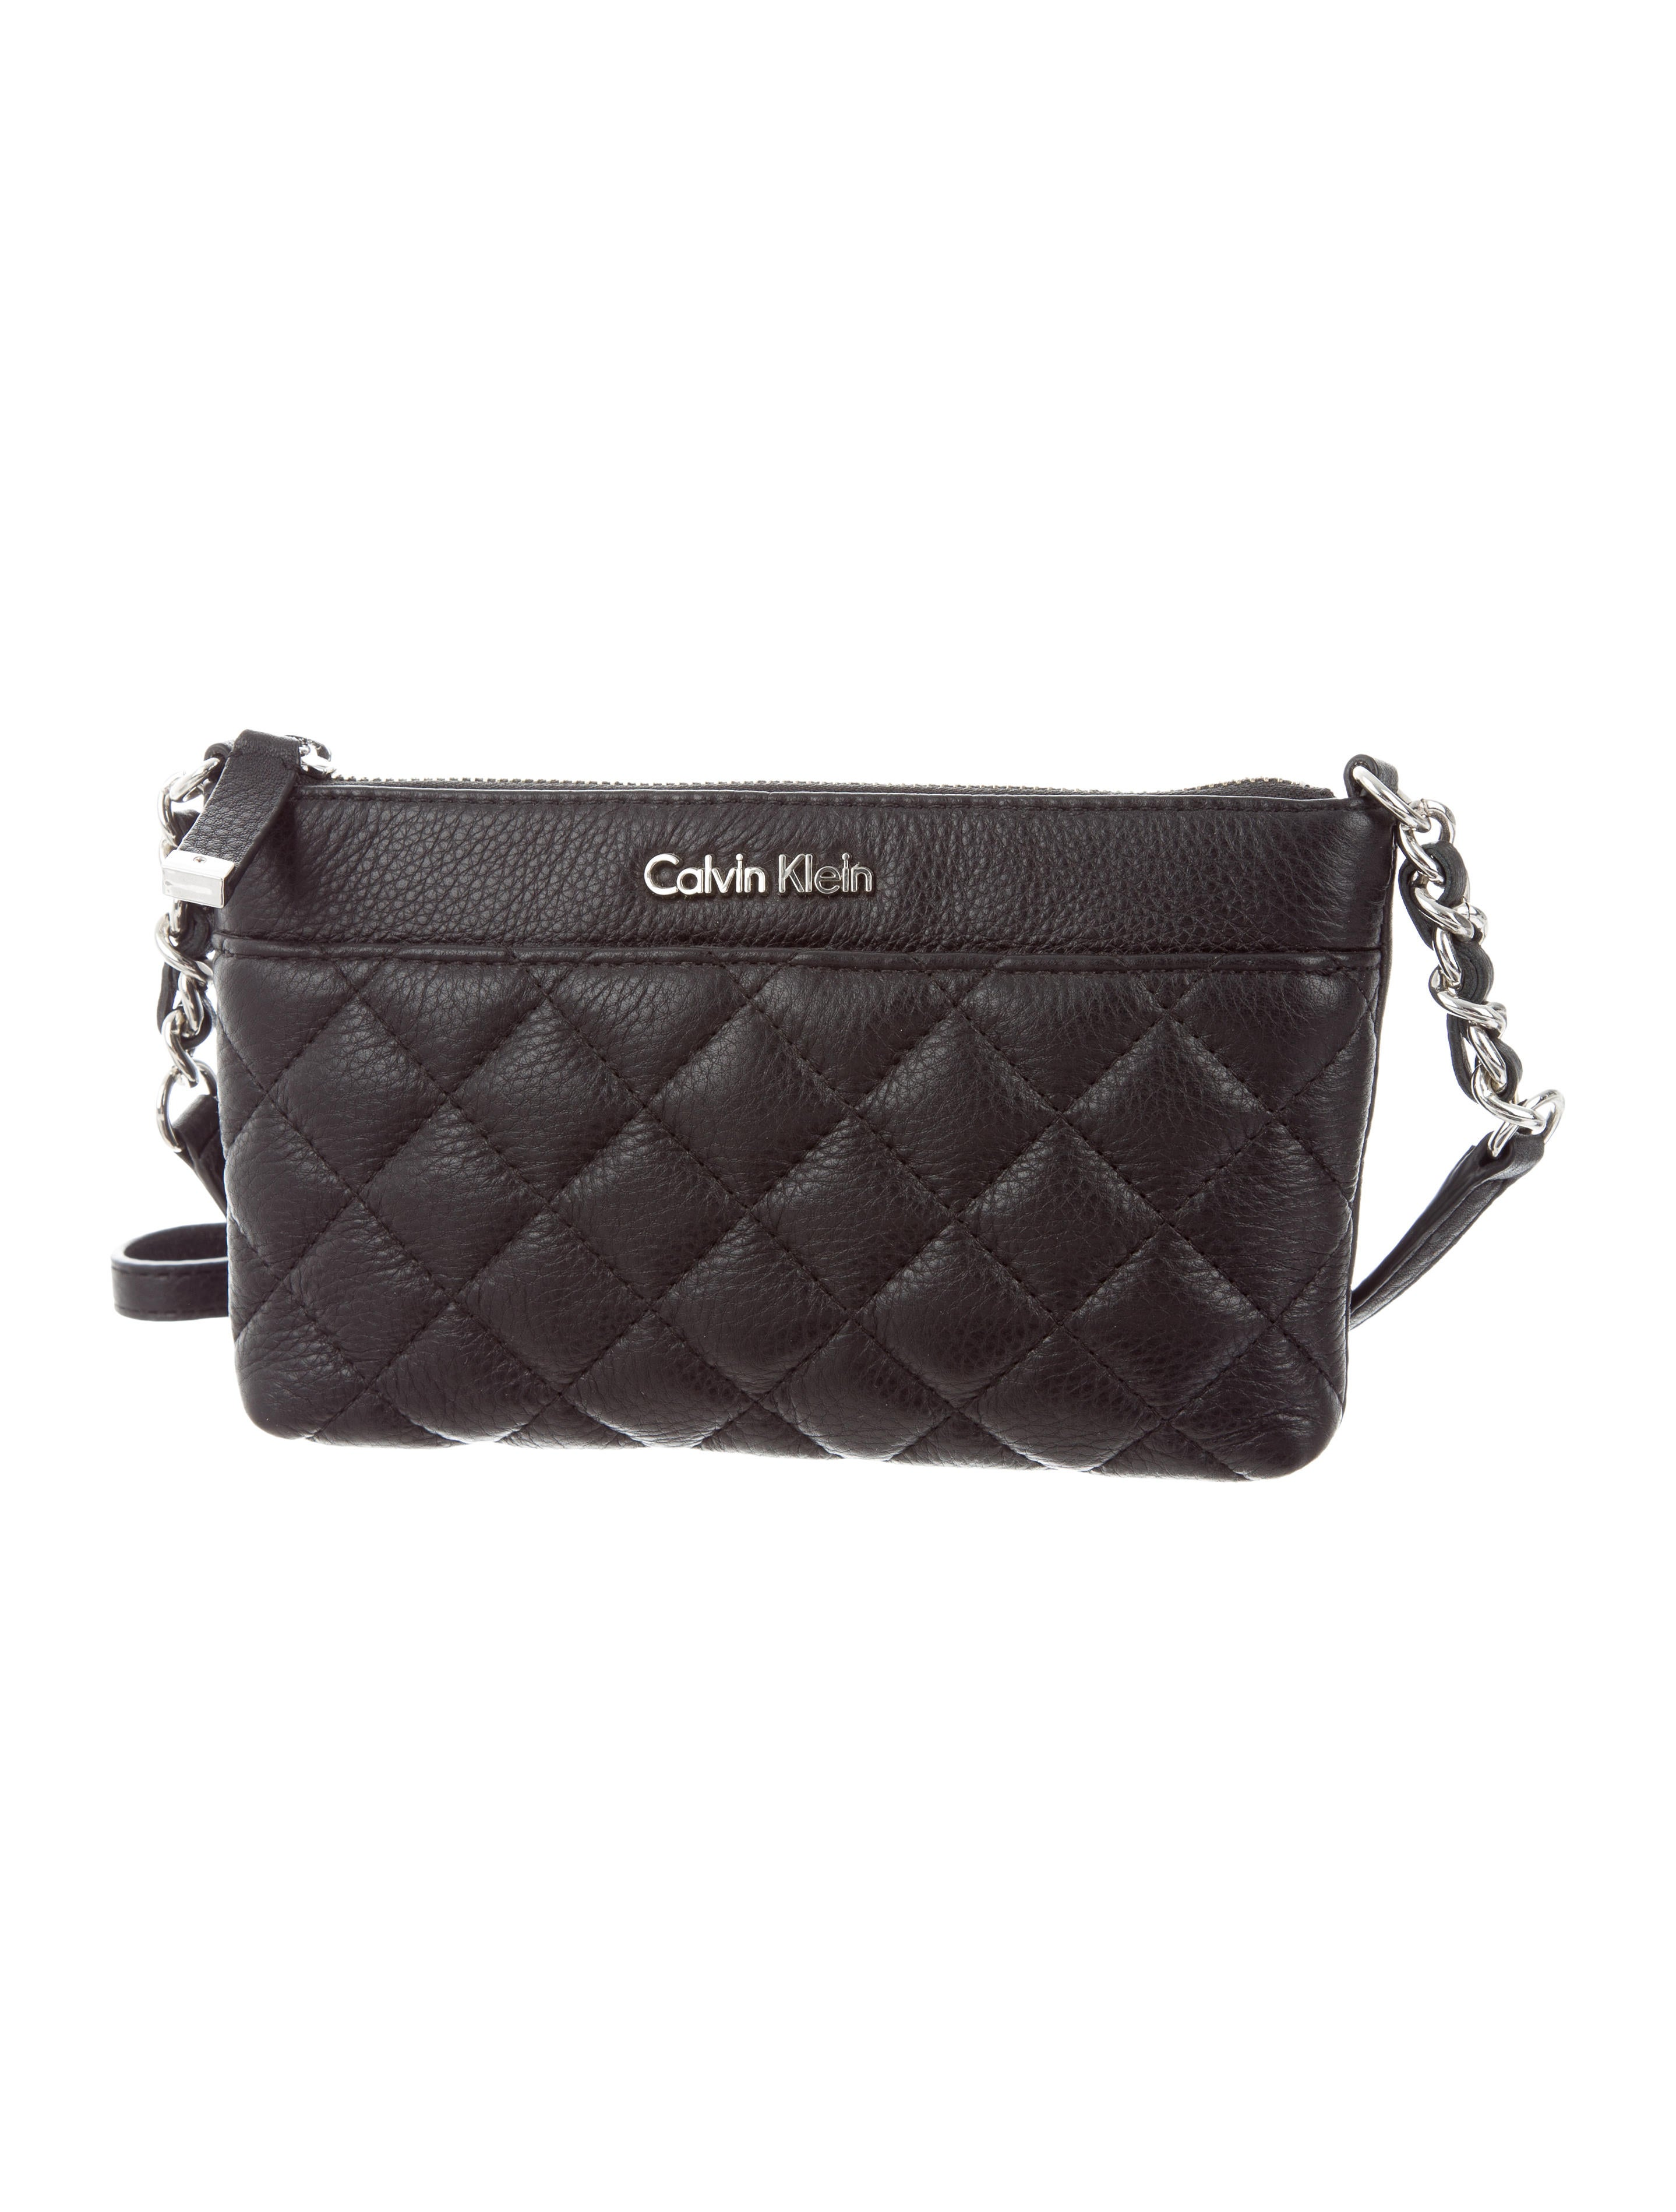 Calvin Klein Quilted Leather Crossbody Bag Handbags